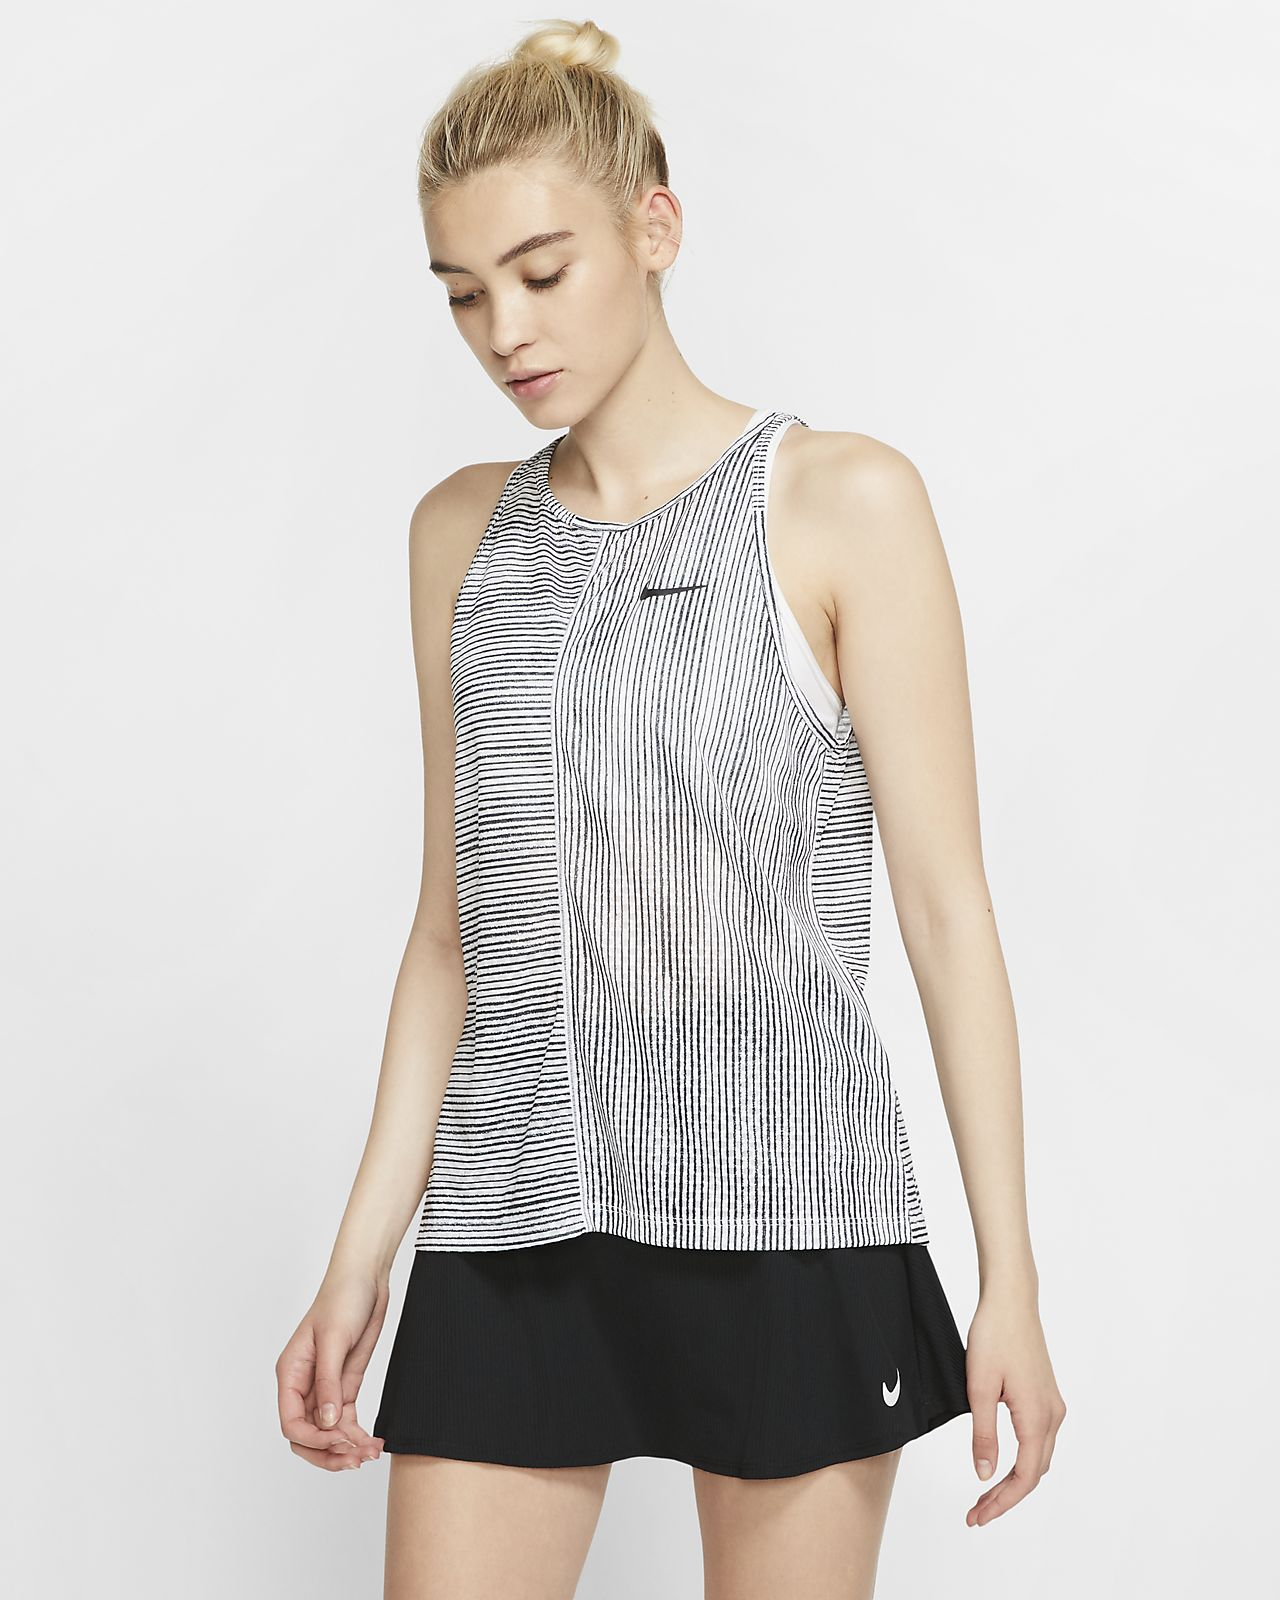 NikeCourt Women's Printed Tennis Tank